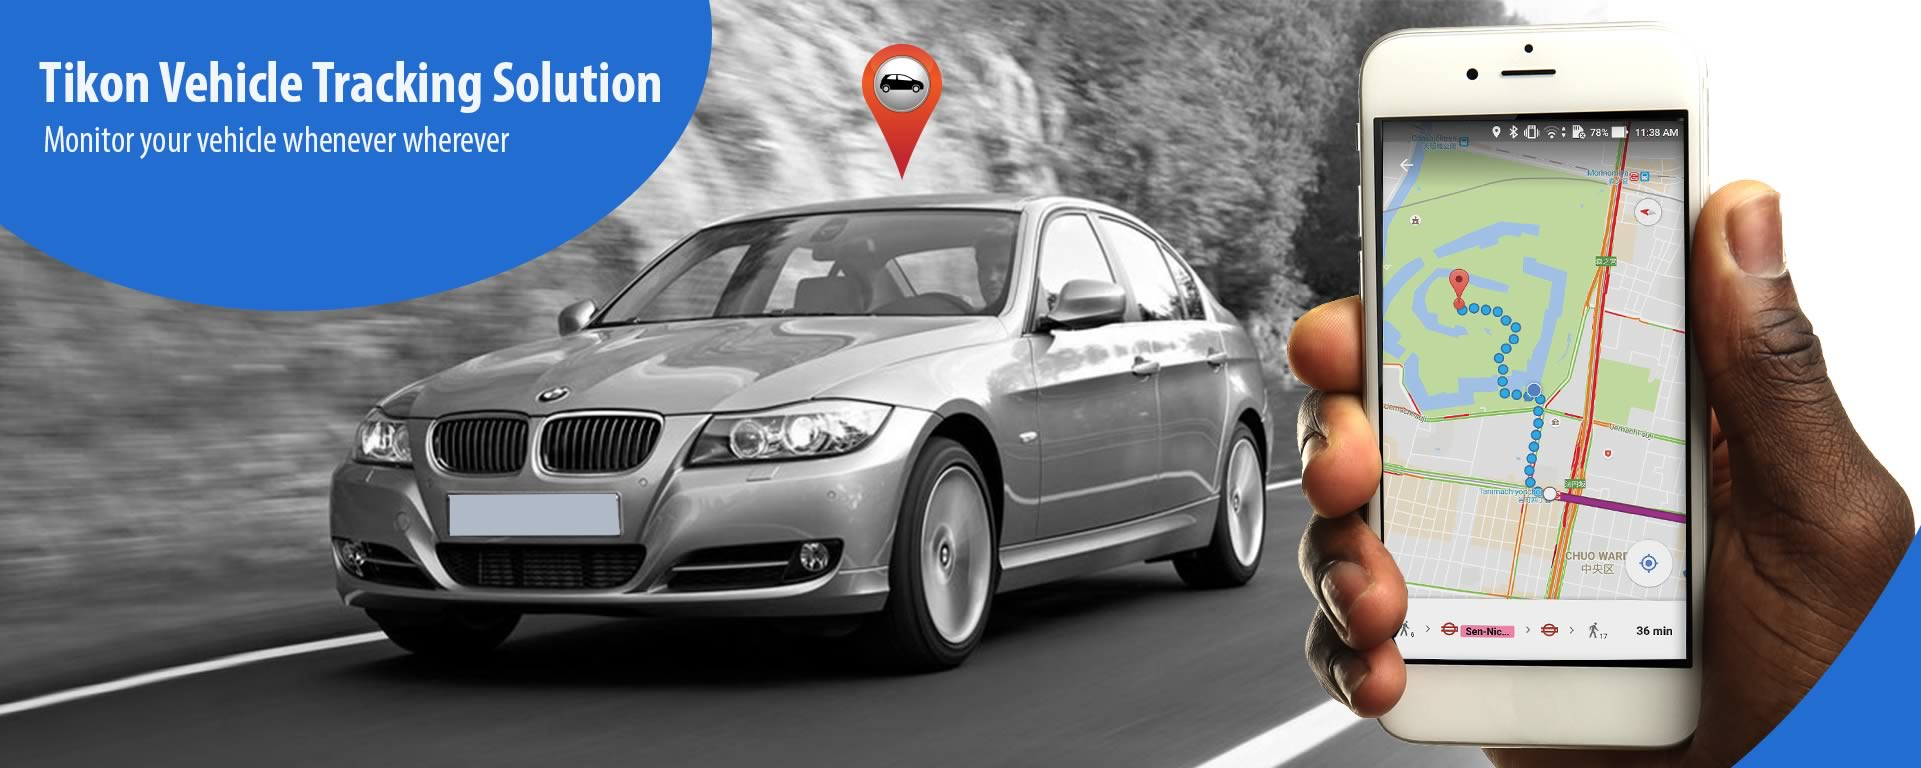 Tikon Vehicle Tracking Solution